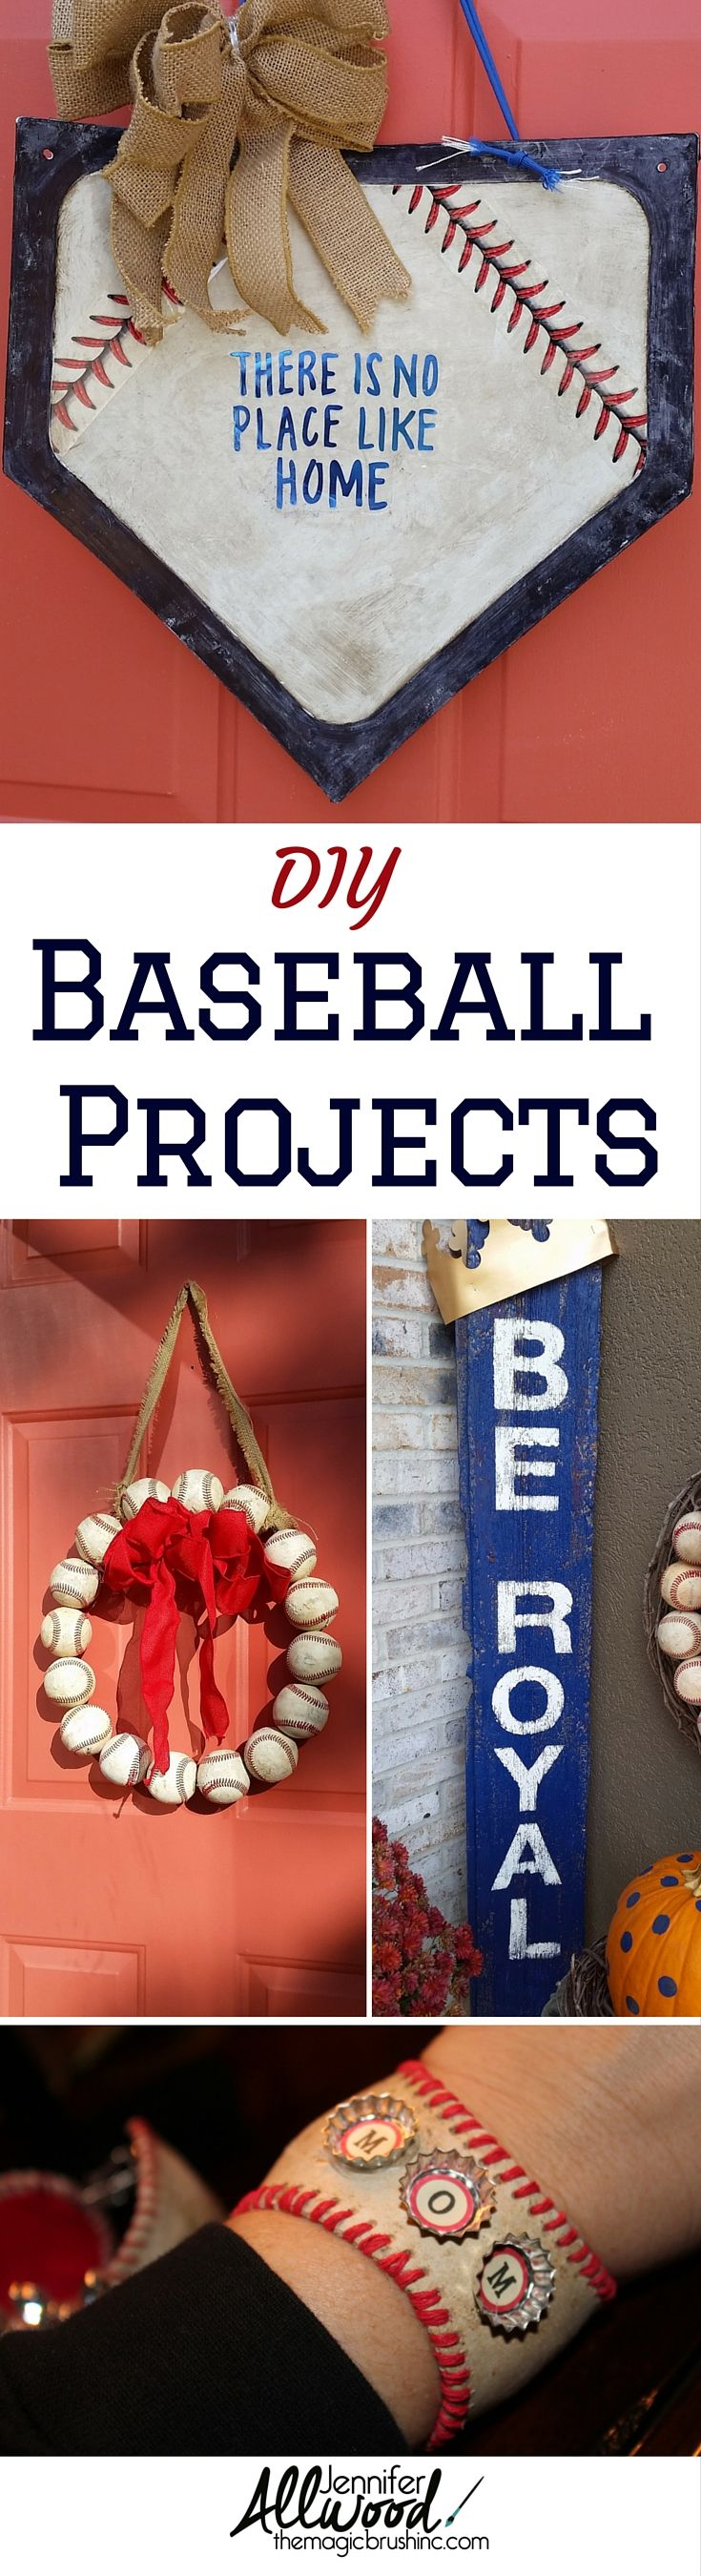 Take me out to the ball game! TheMagicBrushinc.com has tons of baseball-inspired DIY painting projects including: baseball door wreath, painted team barnwood, homeplate door wreath and baseball cuff jewelry, baseball pumpkin and baseball curtains and murals! Get inspired and play ball! More